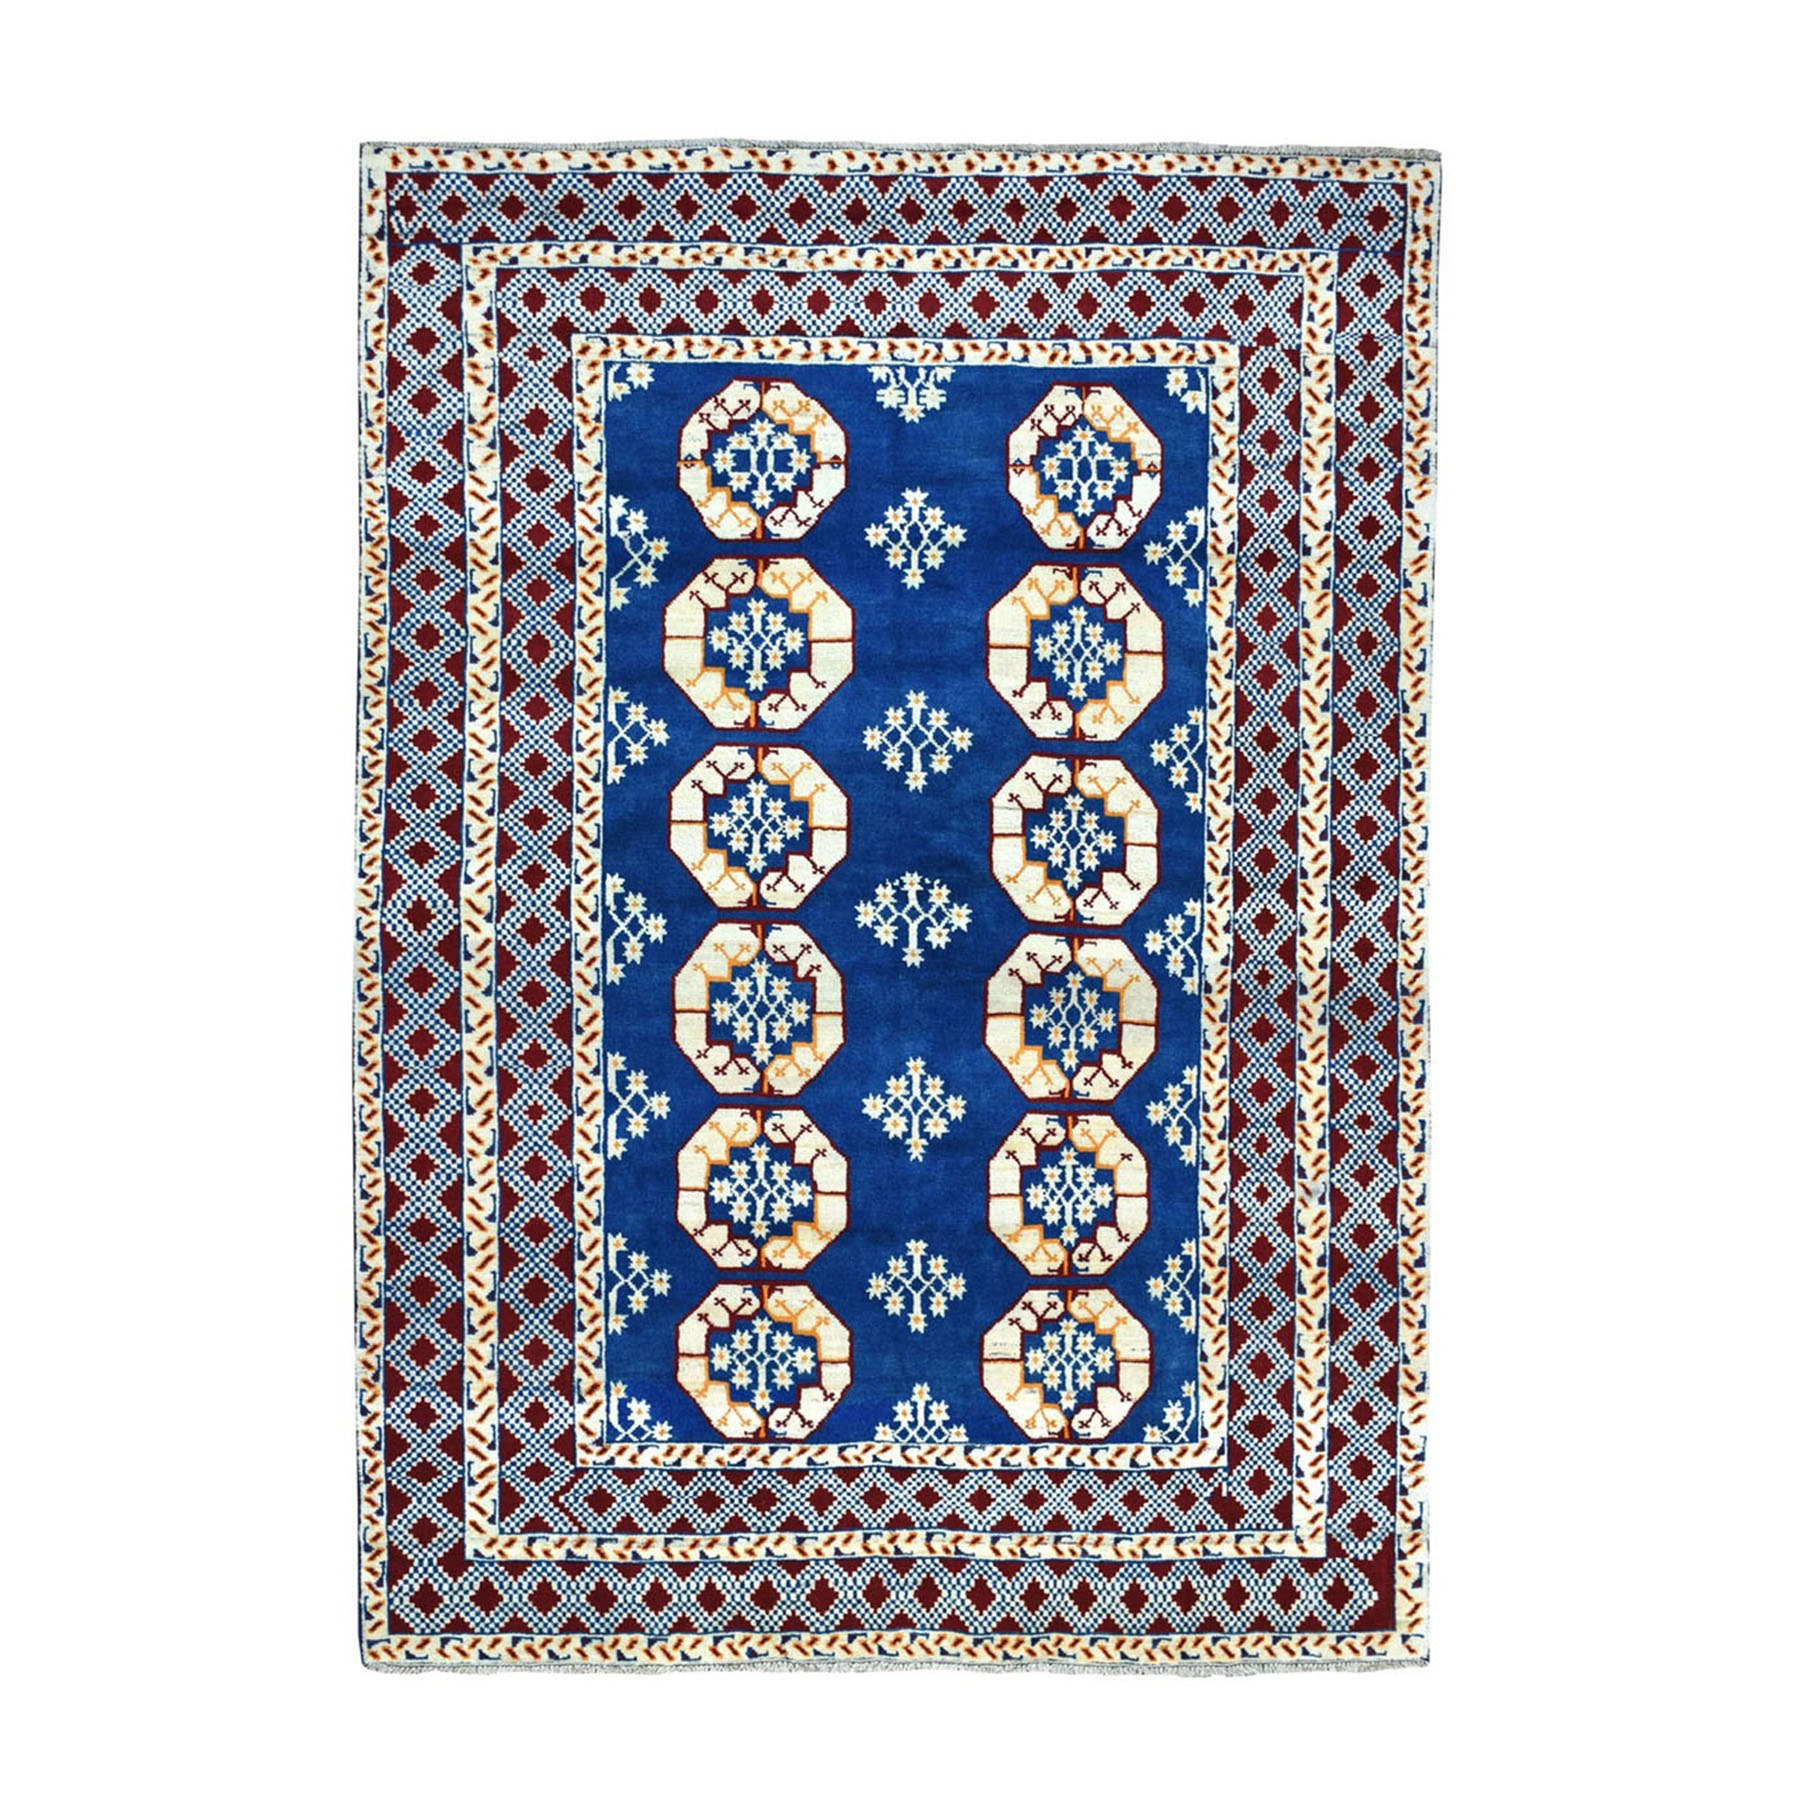 "6'7""X9'4"" Blue Elephant Feet Design Colorful Afghan Baluch Hand Knotted Pure Wool Oriental Rug moaeccd6"